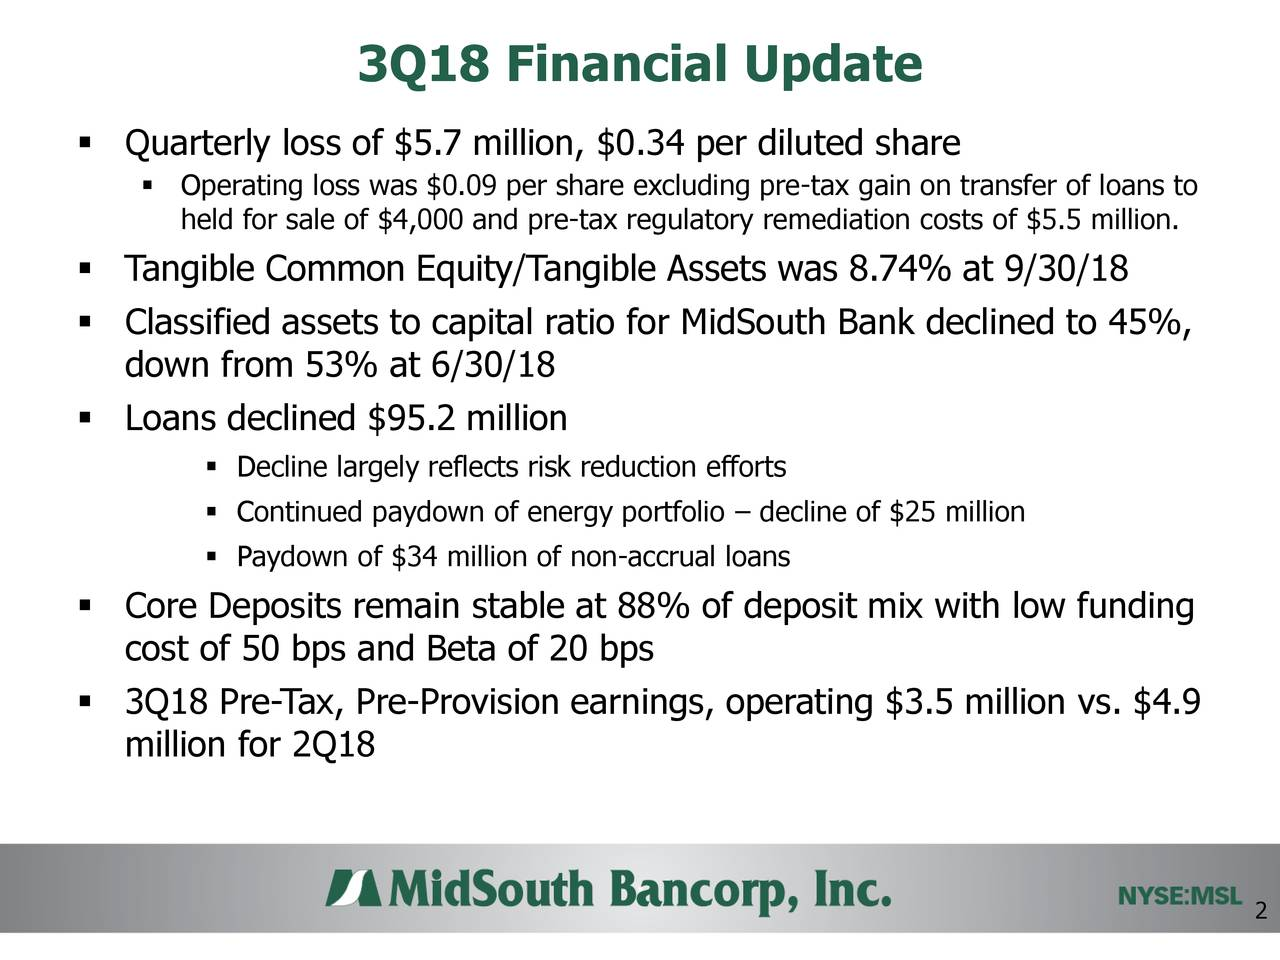 ▪ Quarterly loss of $5.7 million, $0.34 per diluted share ▪ Operating loss was $0.09 per share excluding pre-tax gain on transfer of loans to held for sale of $4,000 and pre-tax regulatory remediation costs of $5.5 million. ▪ Tangible Common Equity/Tangible Assets was 8.74% at 9/30/18 ▪ Classified assets to capital ratio for MidSouth Bank declined to 45%, down from 53% at 6/30/18 ▪ Loans declined $95.2 million ▪ Decline largely reflects risk reduction efforts ▪ Continued paydown of energy portfolio – decline of $25 million ▪ Paydown of $34 million of non-accrual loans ▪ Core Deposits remain stable at 88% of deposit mix with low funding cost of 50 bps and Beta of 20 bps ▪ 3Q18 Pre-Tax, Pre-Provision earnings, operating $3.5 million vs. $4.9 million for 2Q18 2